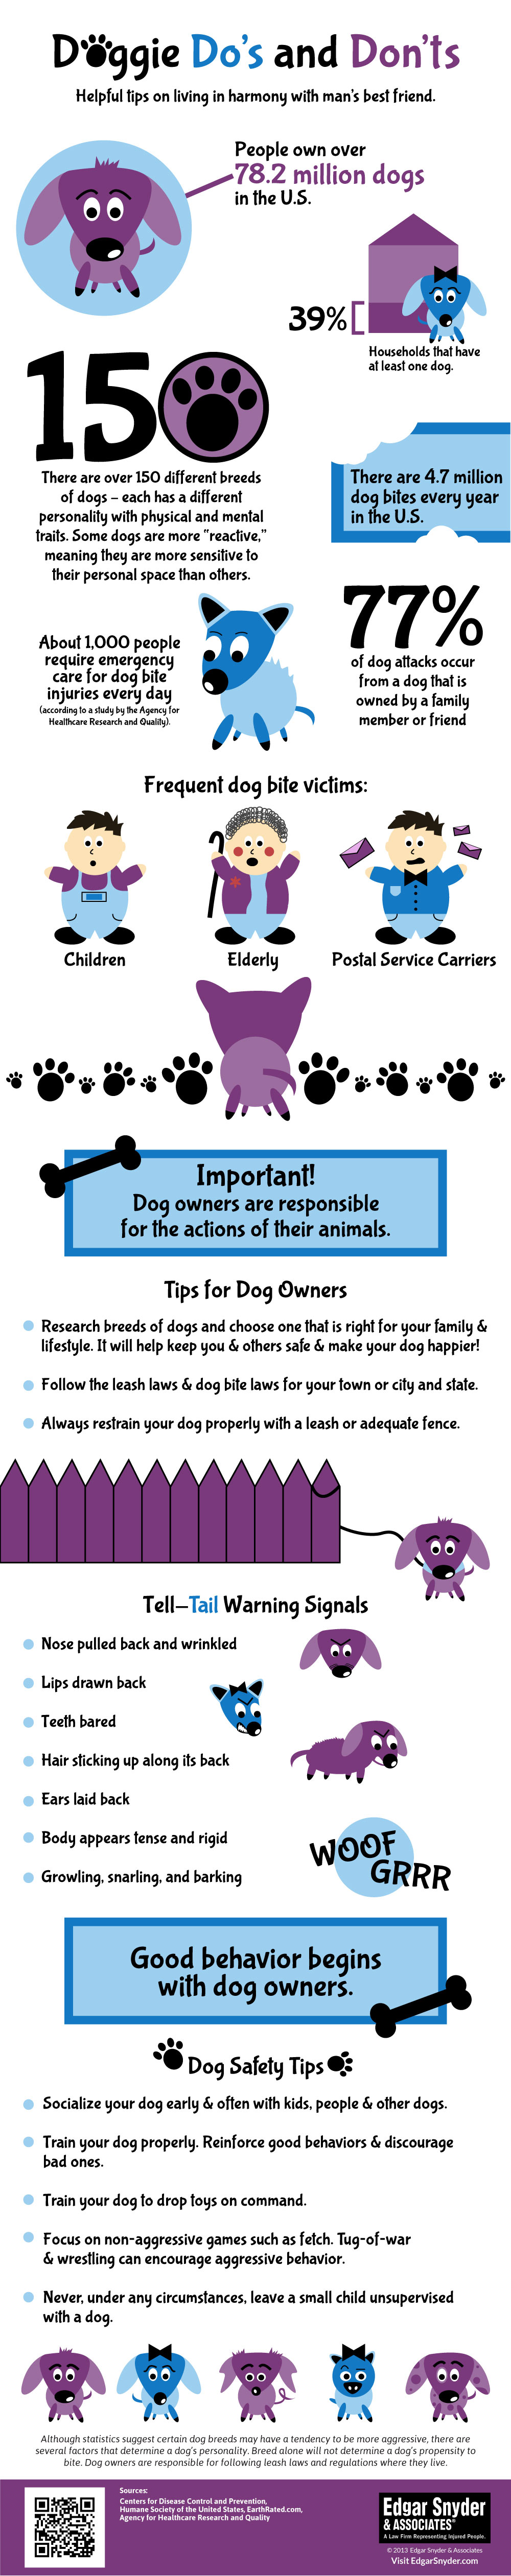 Doggie Do's and Don'ts - Infographic